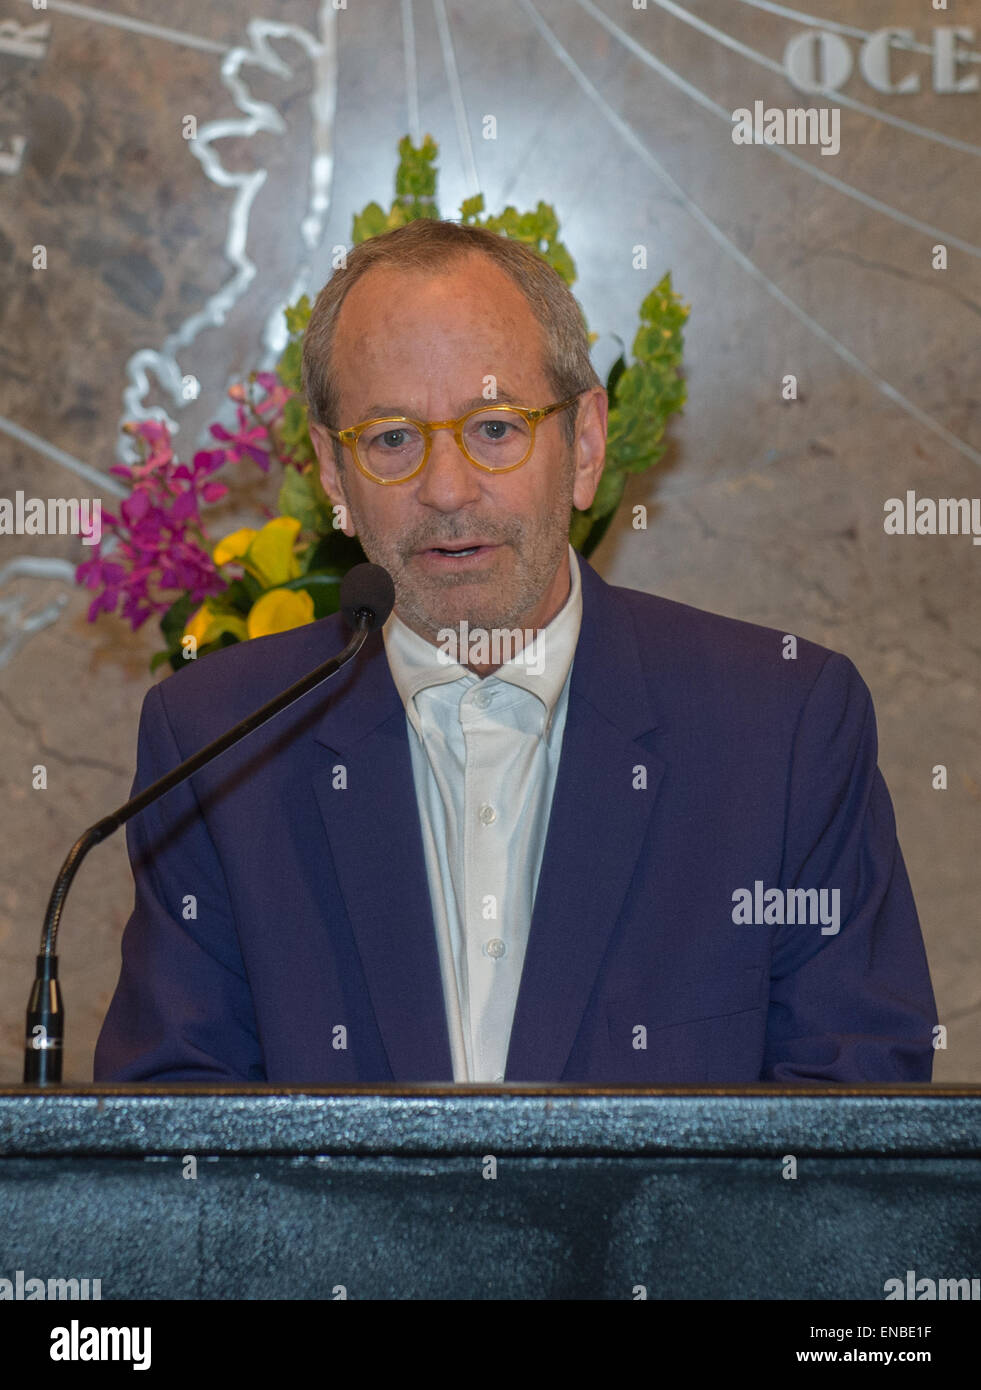 Manhattan New York USA. 1st May 2015. Lighting designer MARC BRICKMAN speaks as the Empire State Building lights to celebrate the opening of the Whitney ...  sc 1 st  Alamy & Manhattan New York USA. 1st May 2015. Lighting designer MARC ...